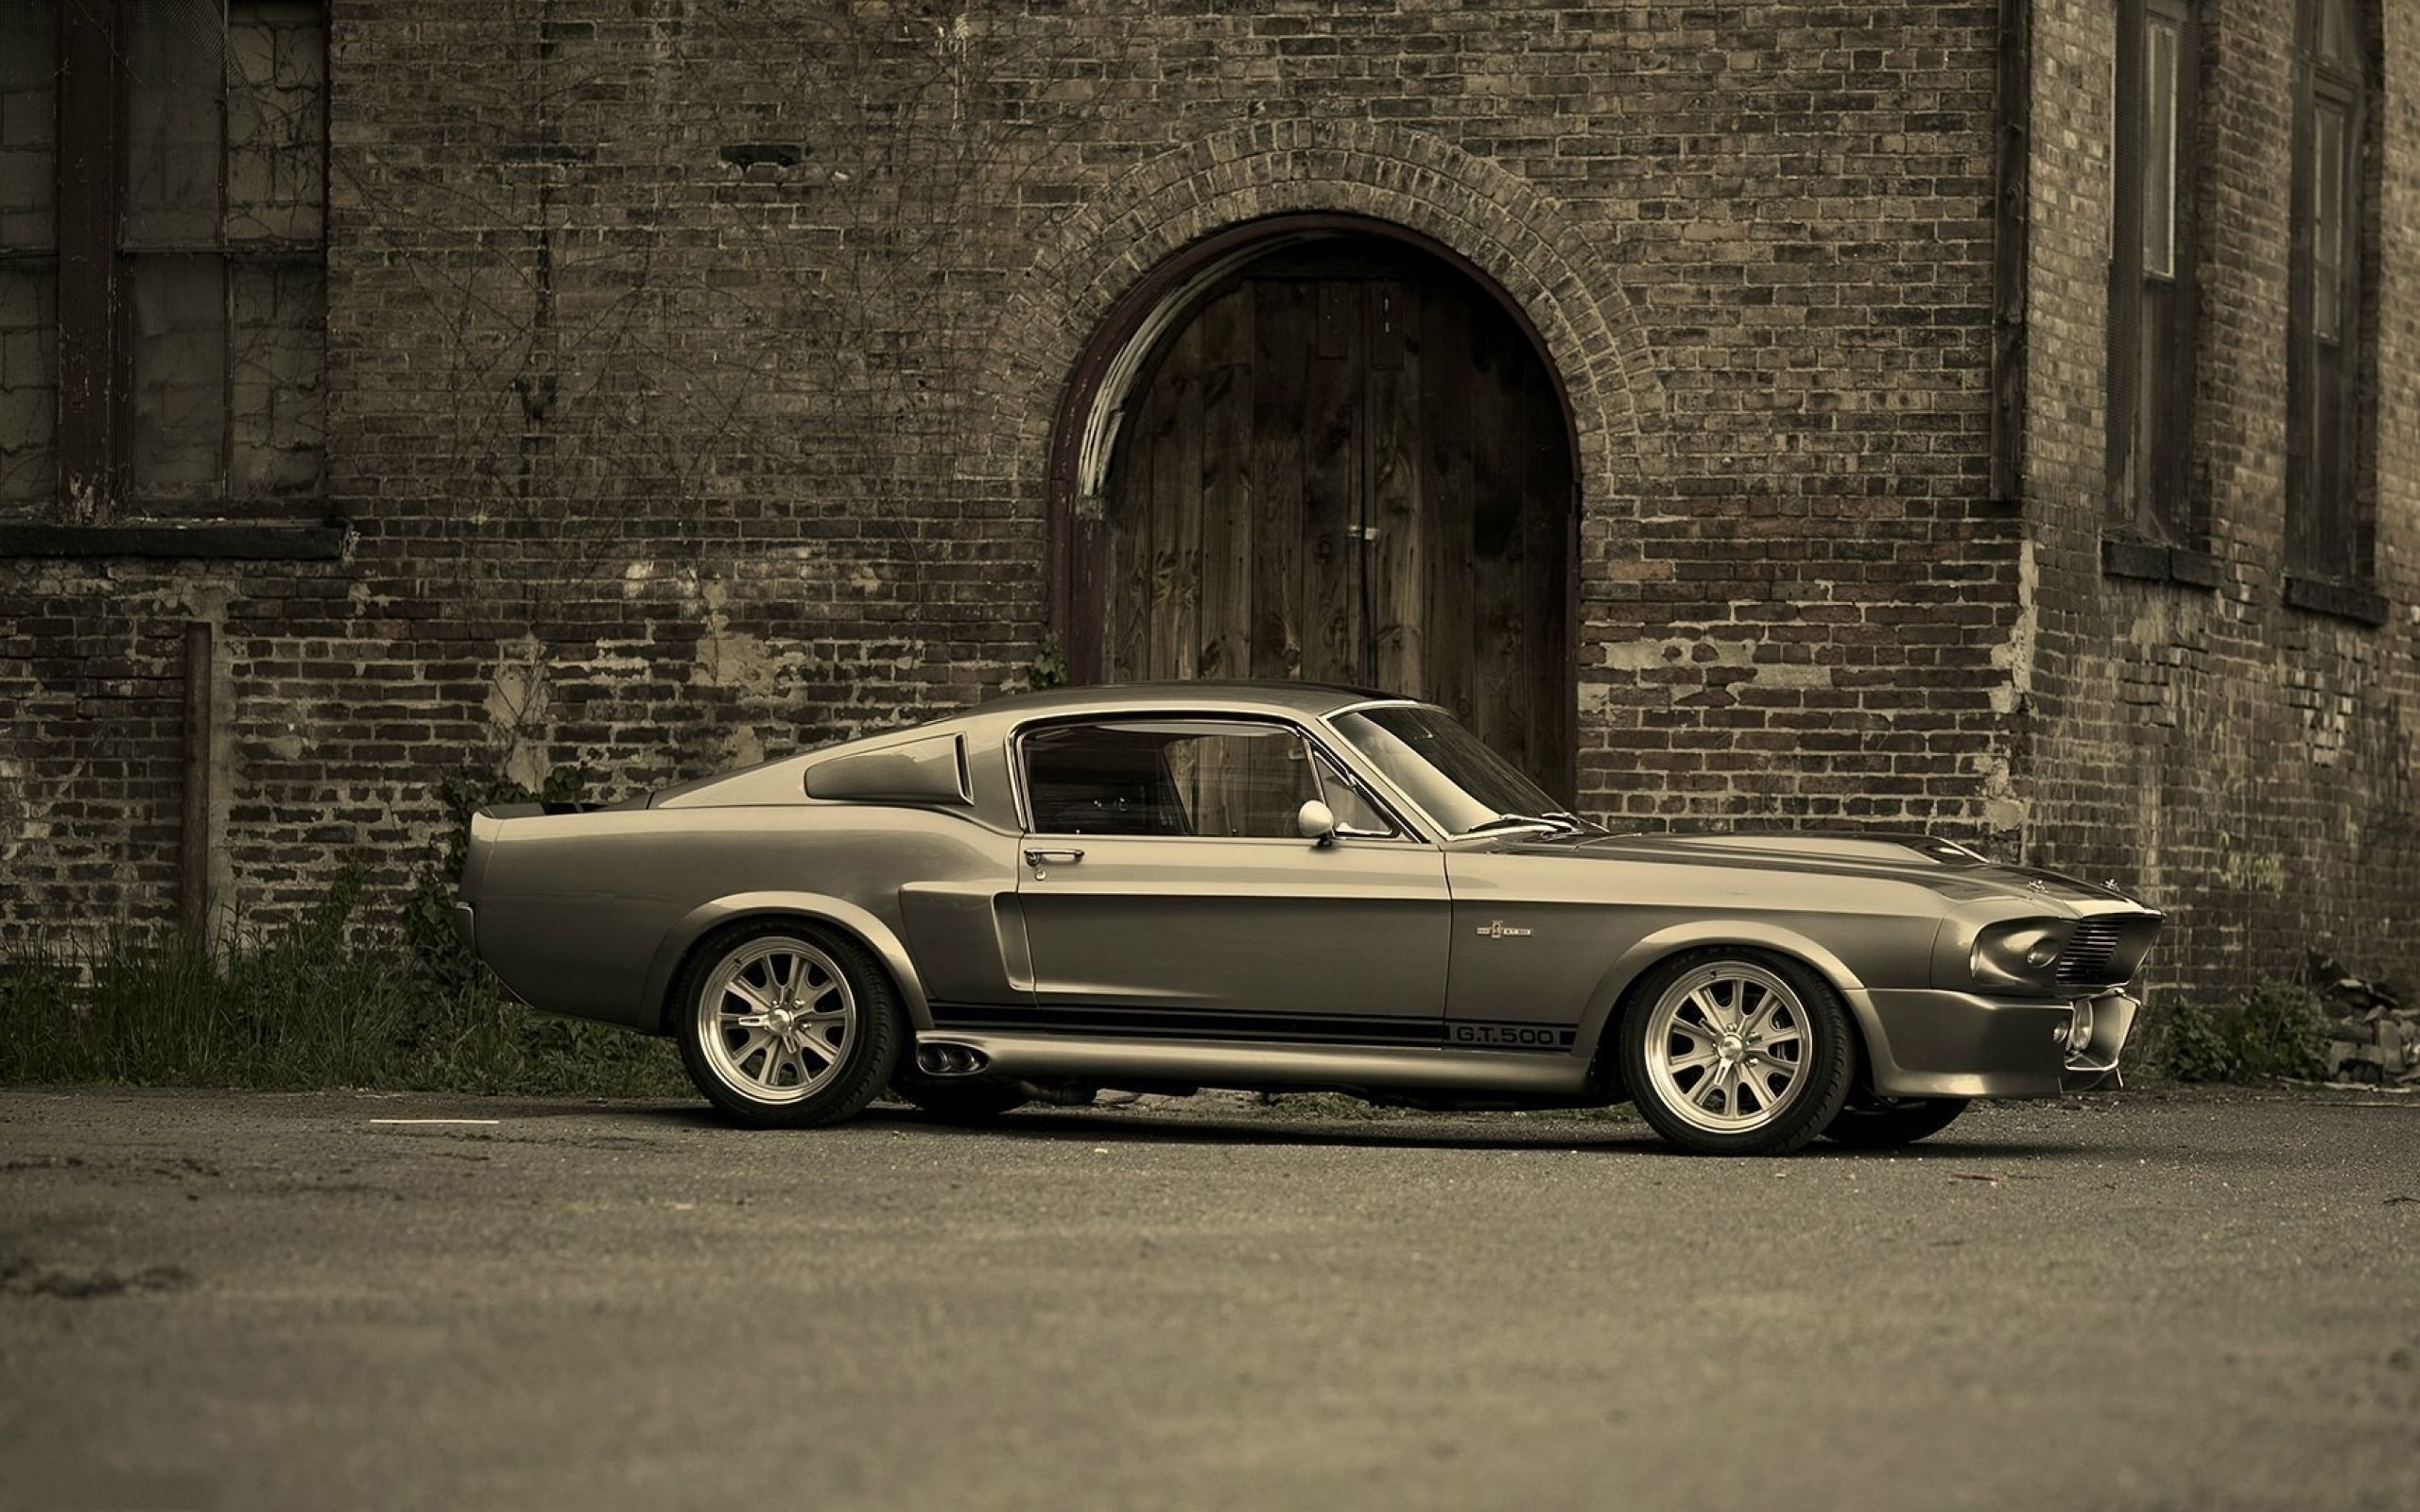 Ford Mustang Shelby Gt500 Oldtimer